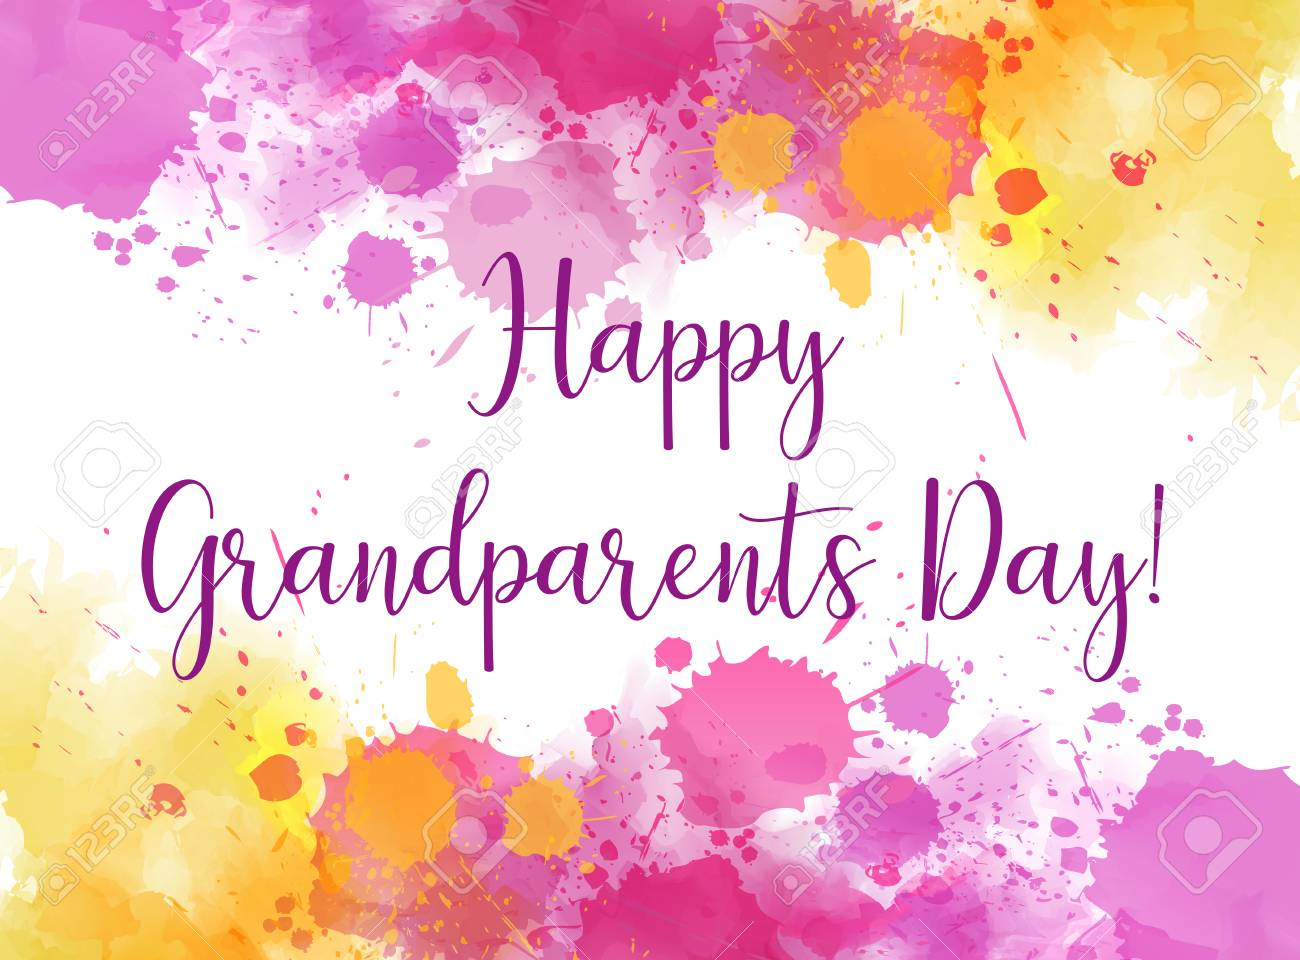 Happy grandparents day abstract greeting card background with happy grandparents day abstract greeting card background with watercolor splashes frame stock vector m4hsunfo